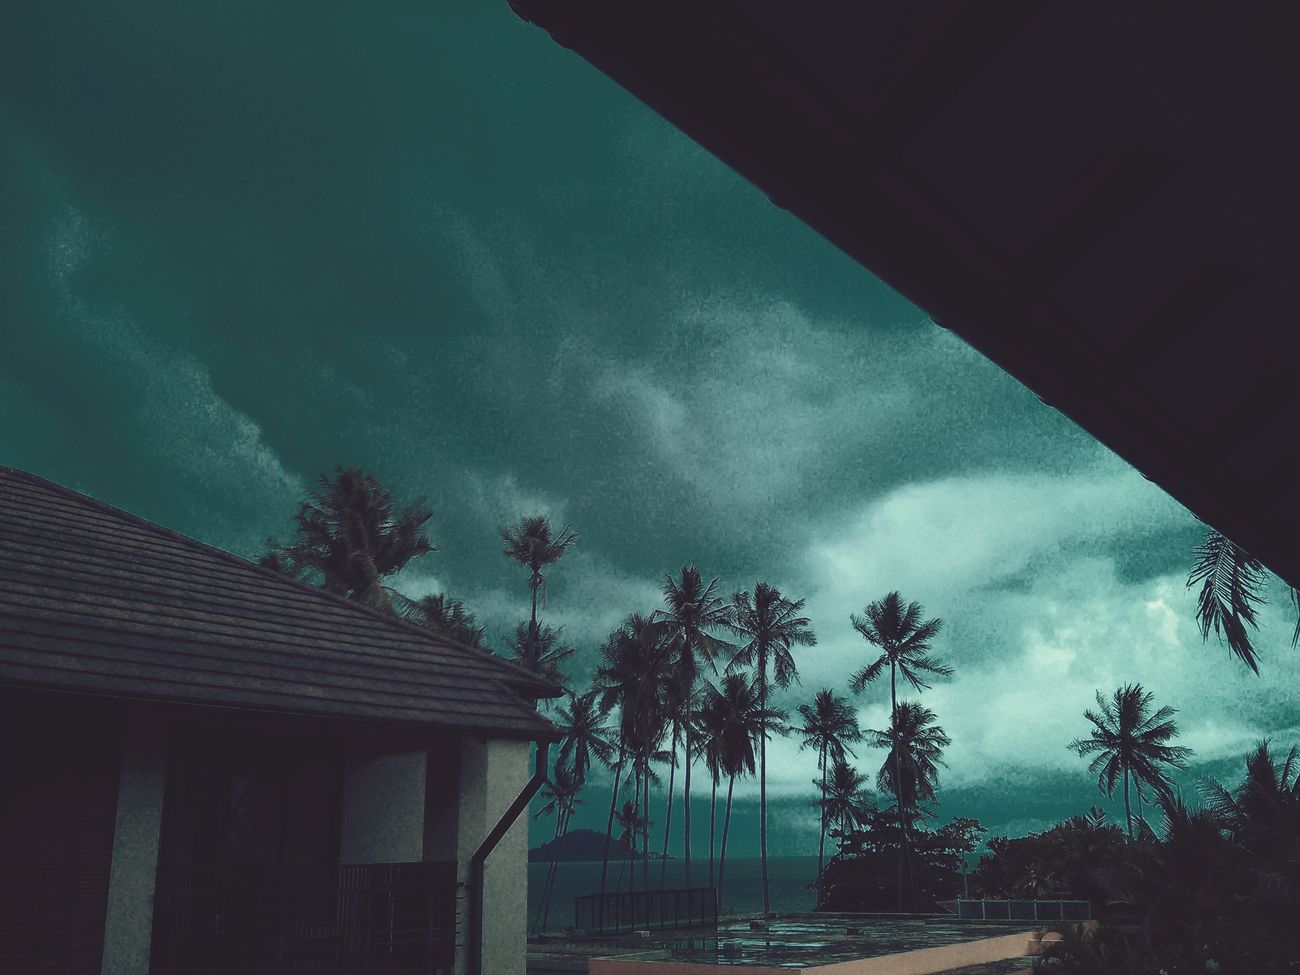 Cloudporn Stormy Weather Traveling In Thailand Kus In Thailand